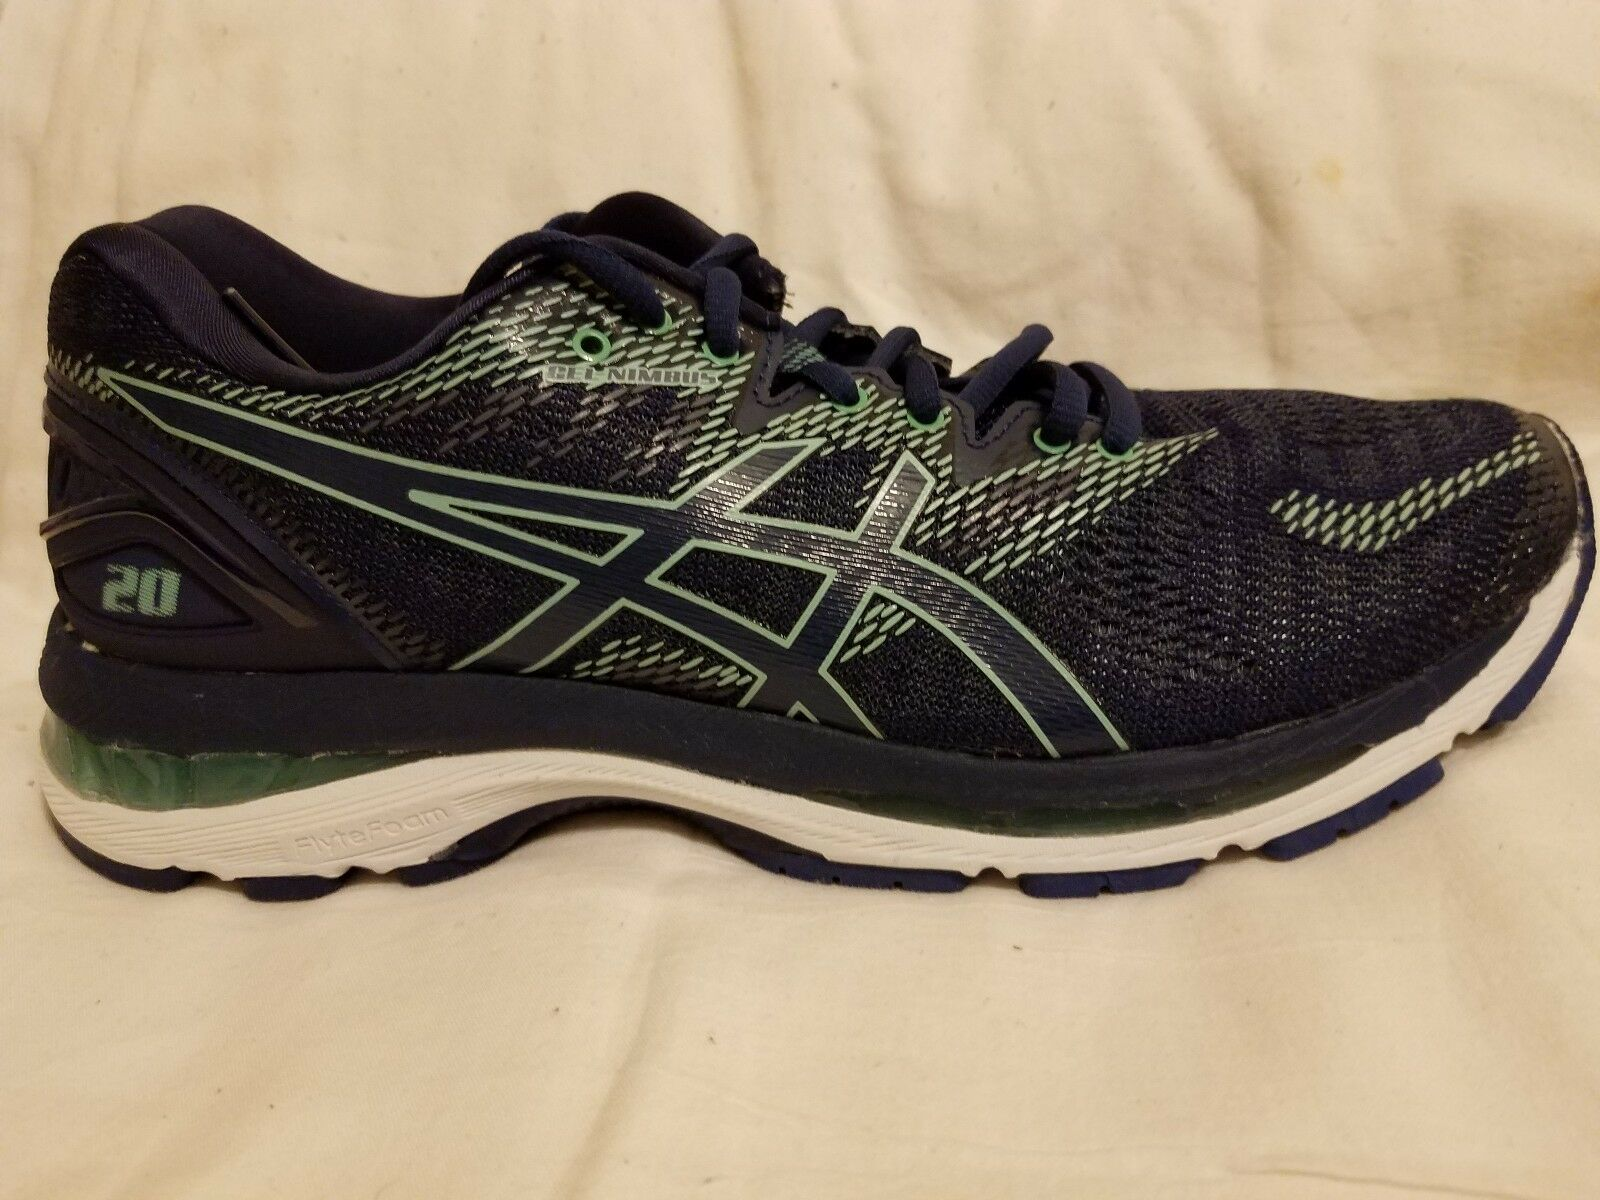 Women's Asics Gel Nimbus 20 running shoes.Multi-color.US size 9.5 medium. Wild casual shoes